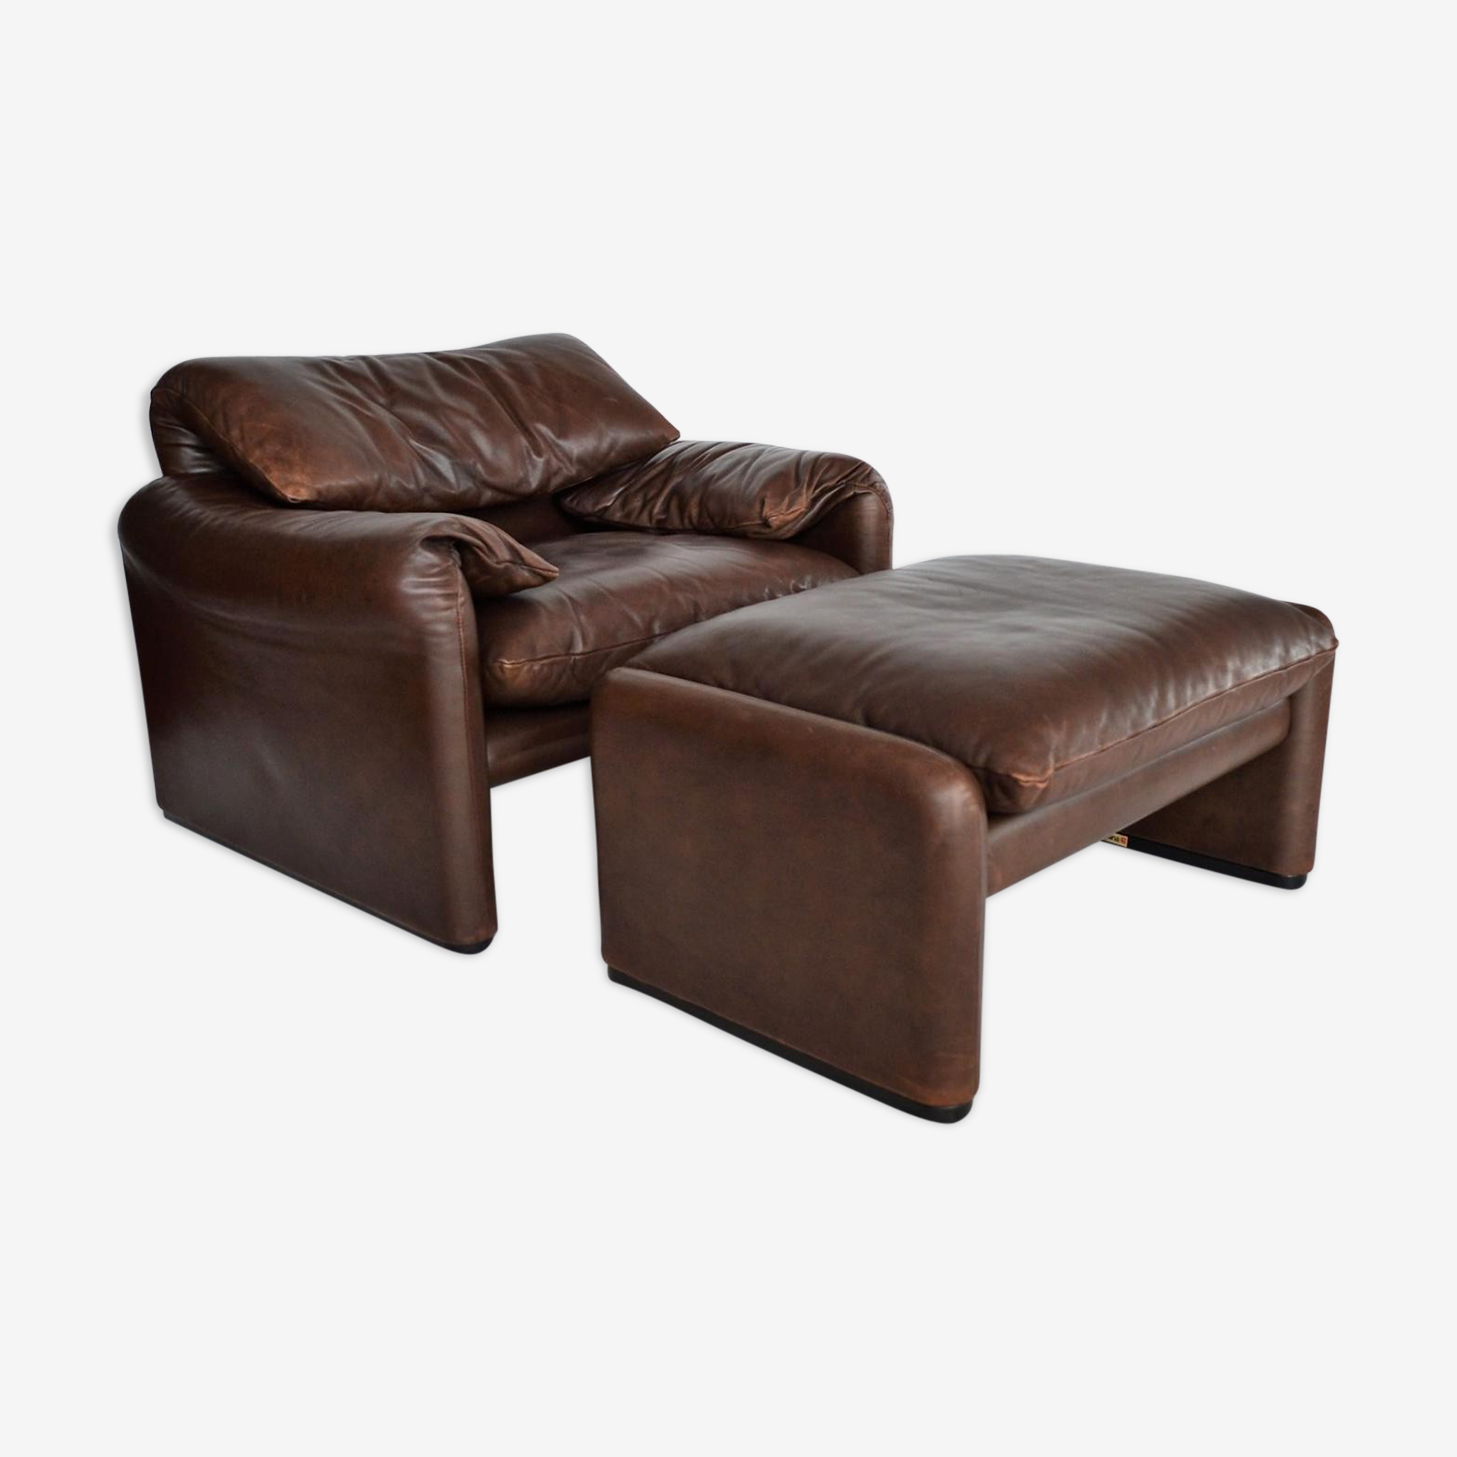 Maralunga armchair in leather & Ottoman by Vico Magistretti for Cassina 1970 s